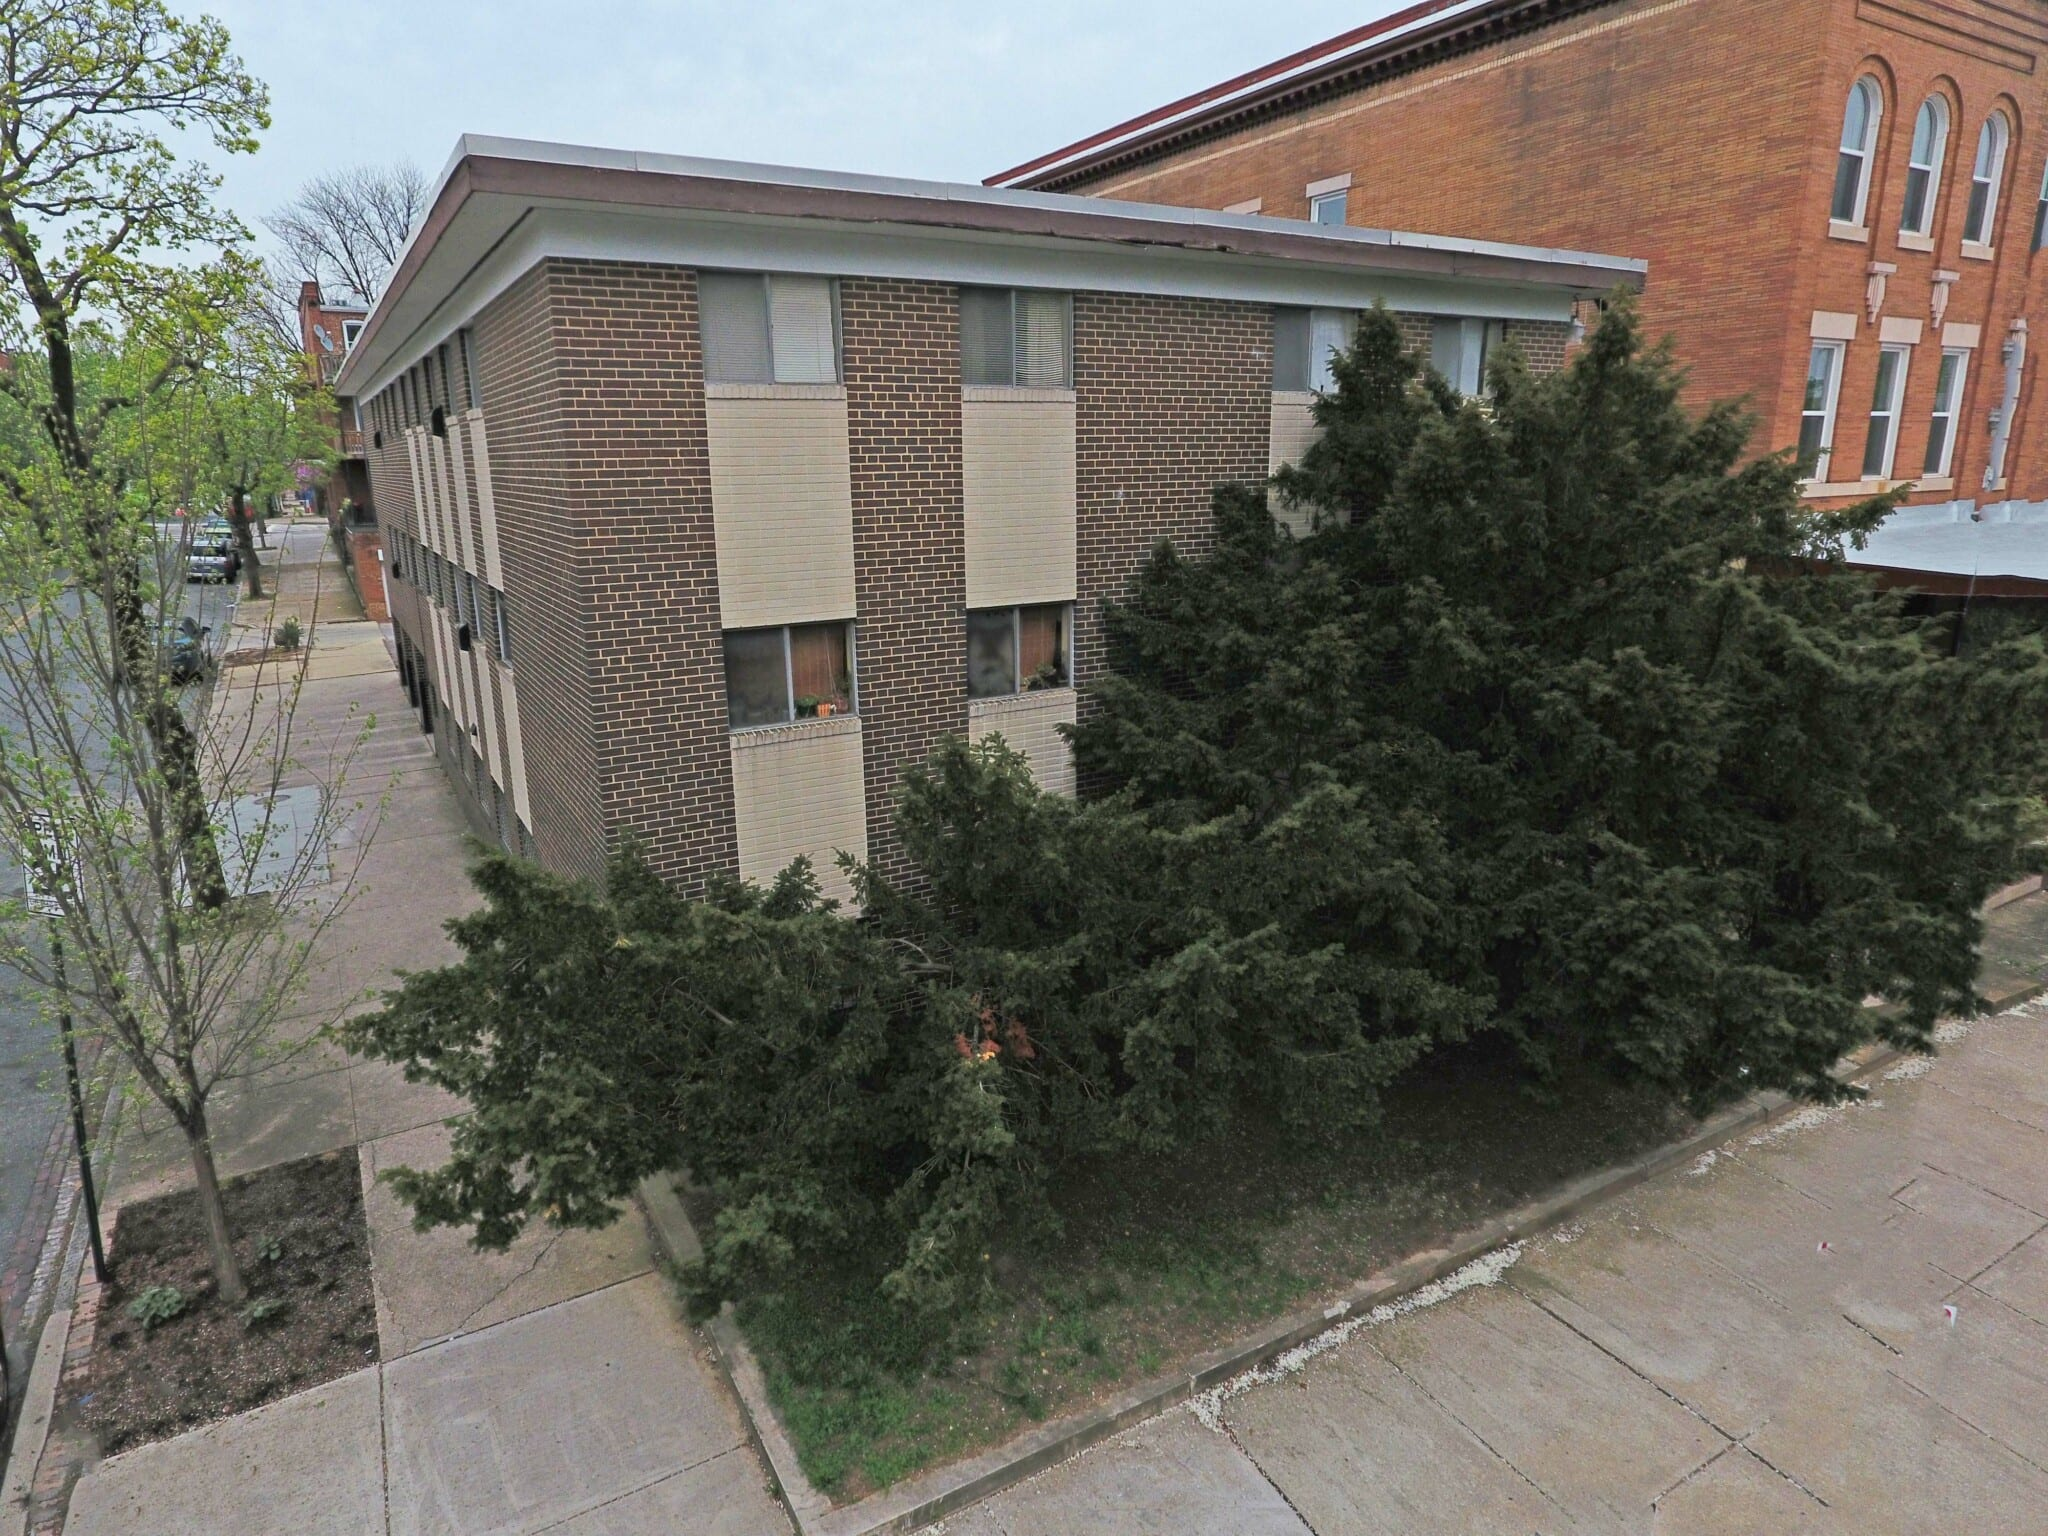 2637 St Paul St:  11 Lead-Free Garden-Style Apartments